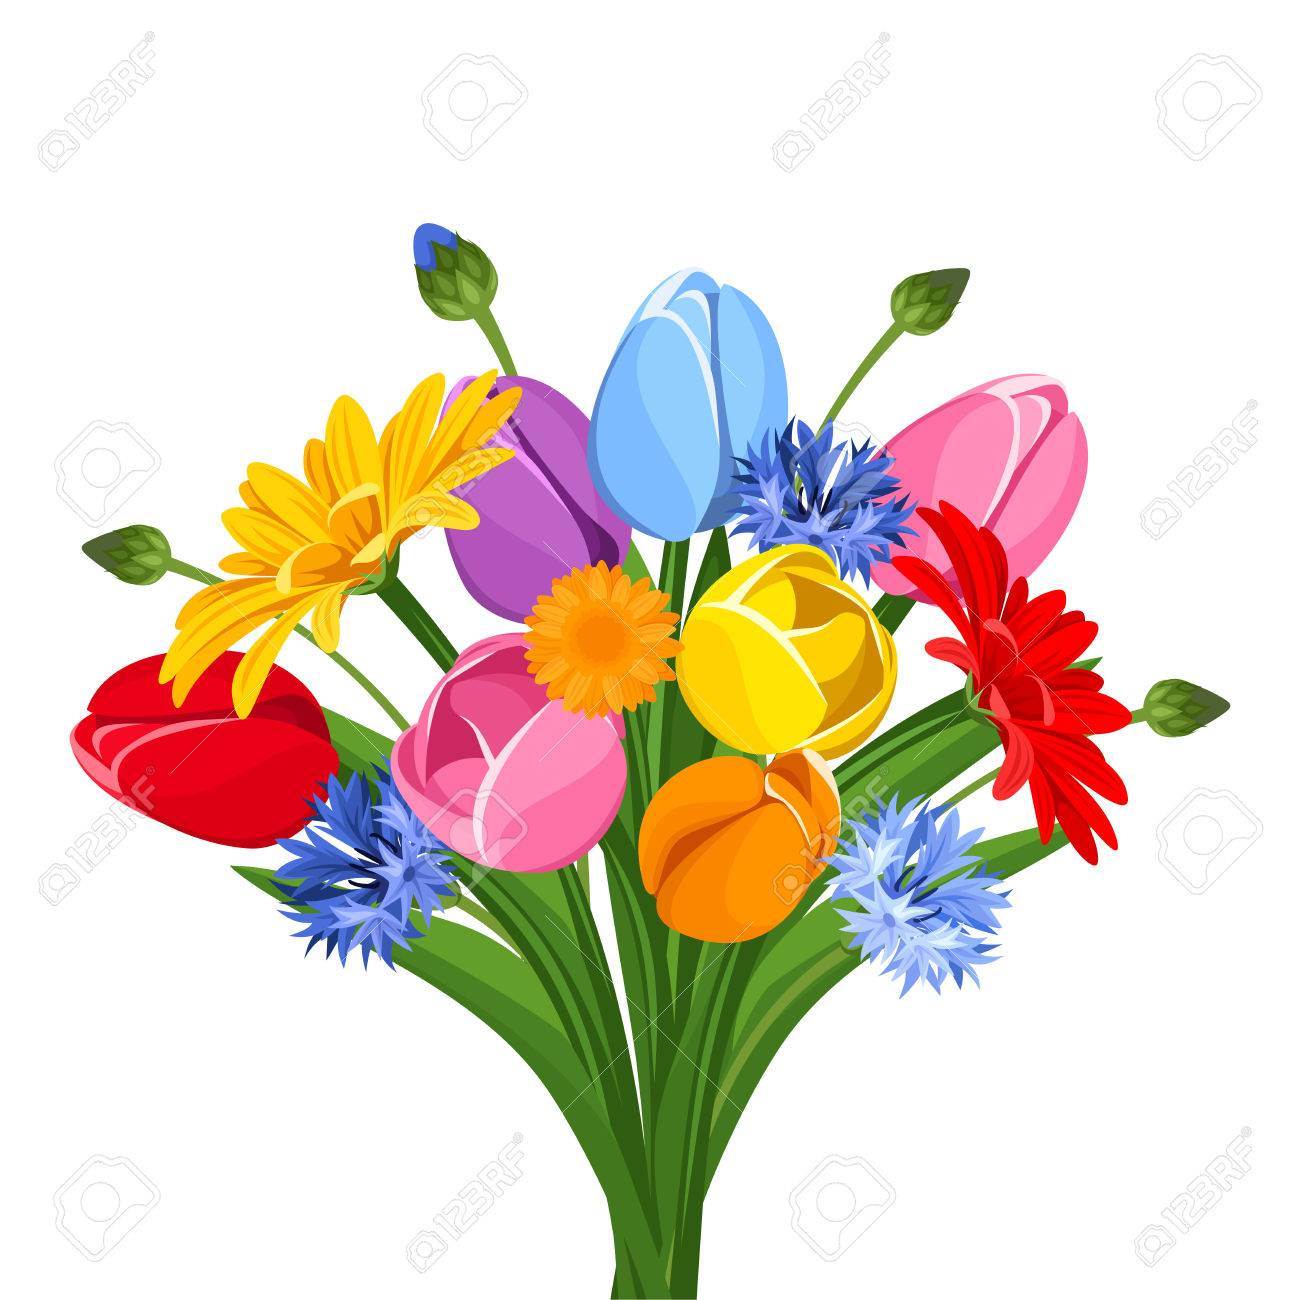 Bouquet of colorful tulips, gerbera flowers and cornflowers.